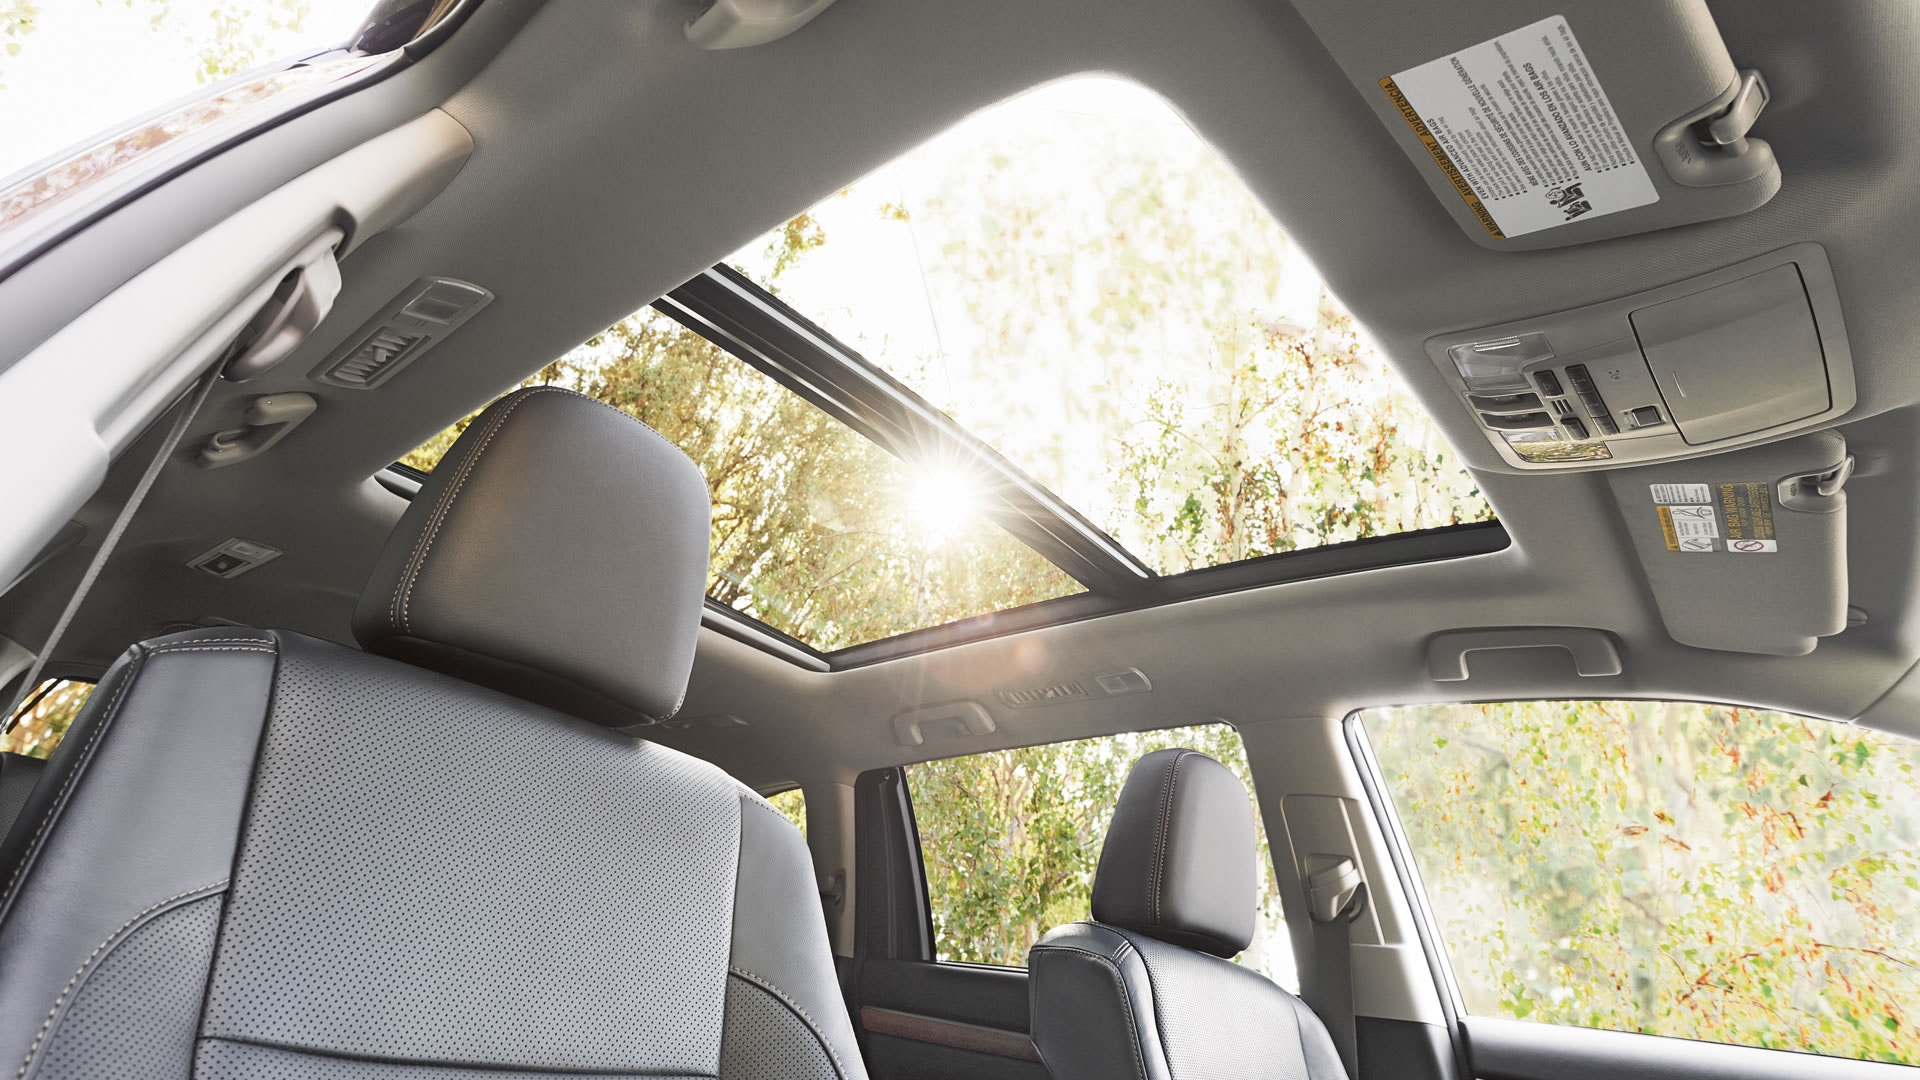 Sun Roof in the 2019 Highlander